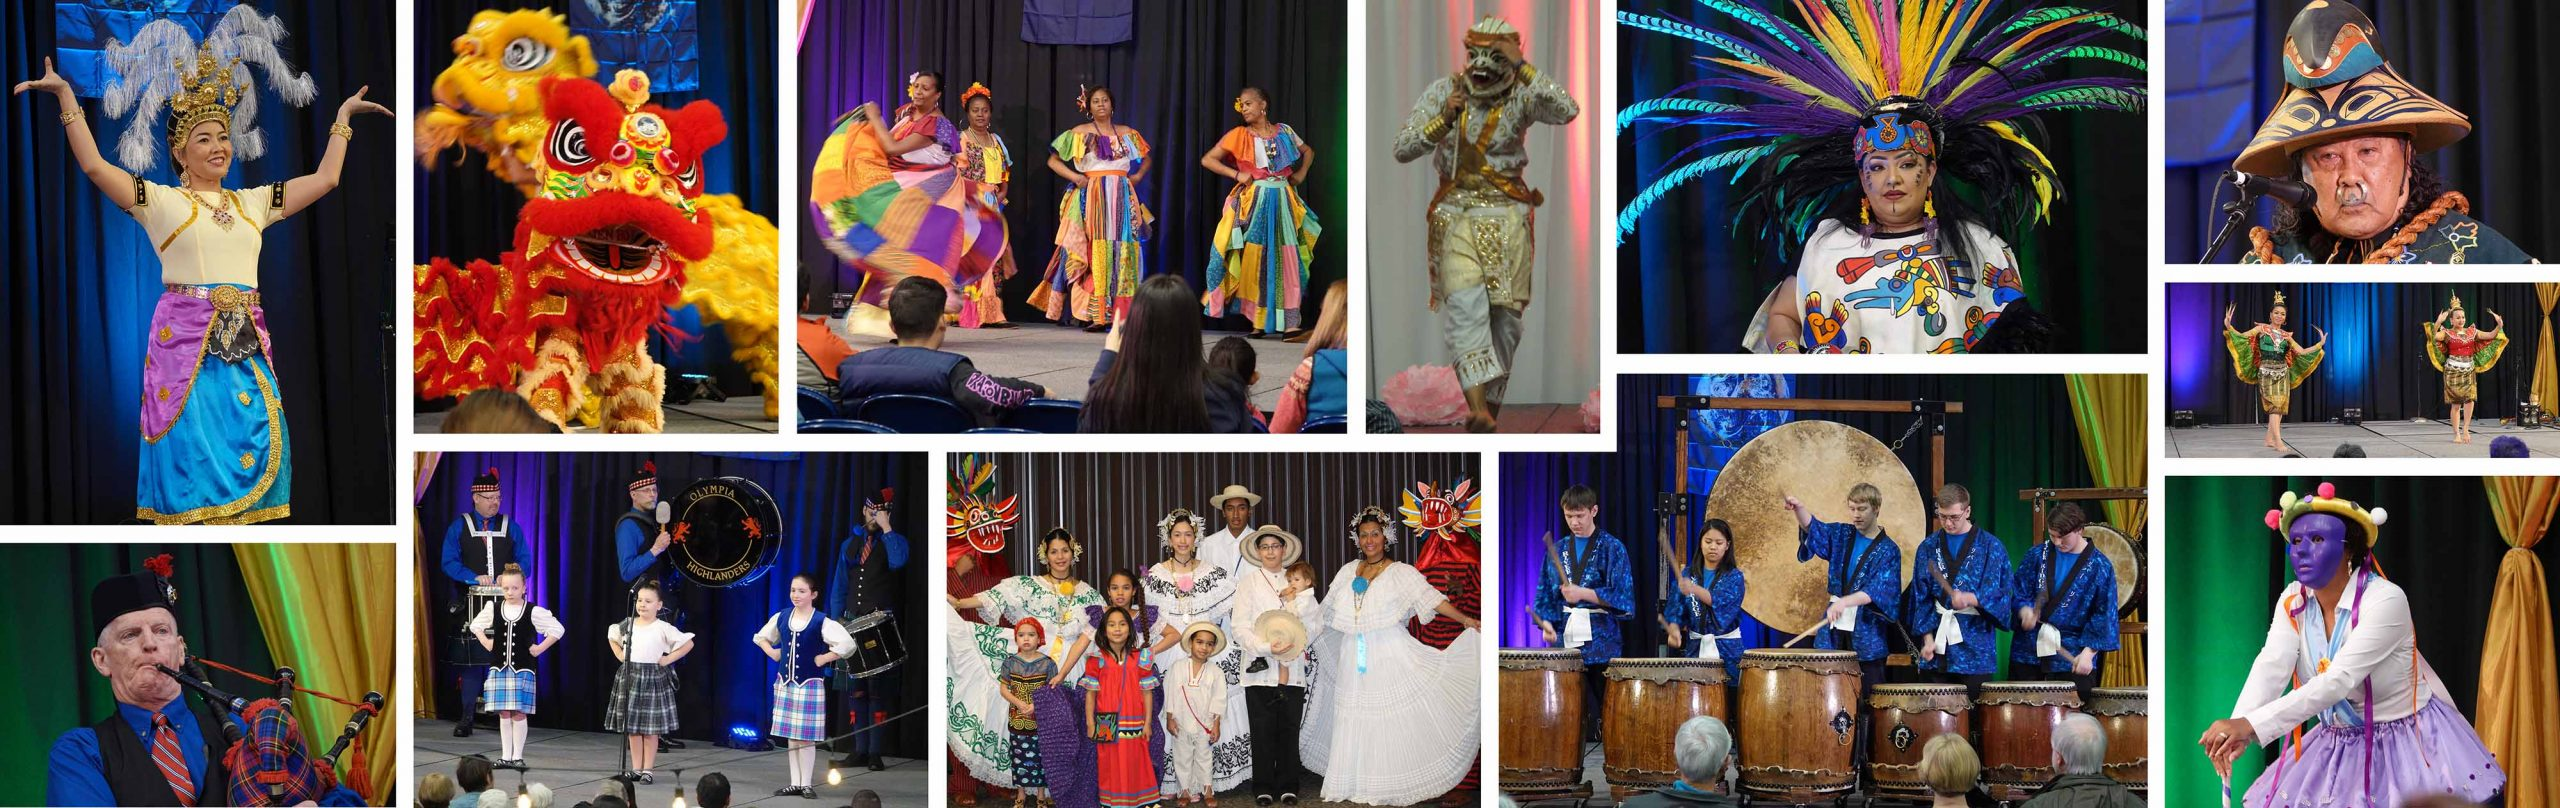 City-of-Lacey-Virtual-Cultural-Celebration-2021-Collage